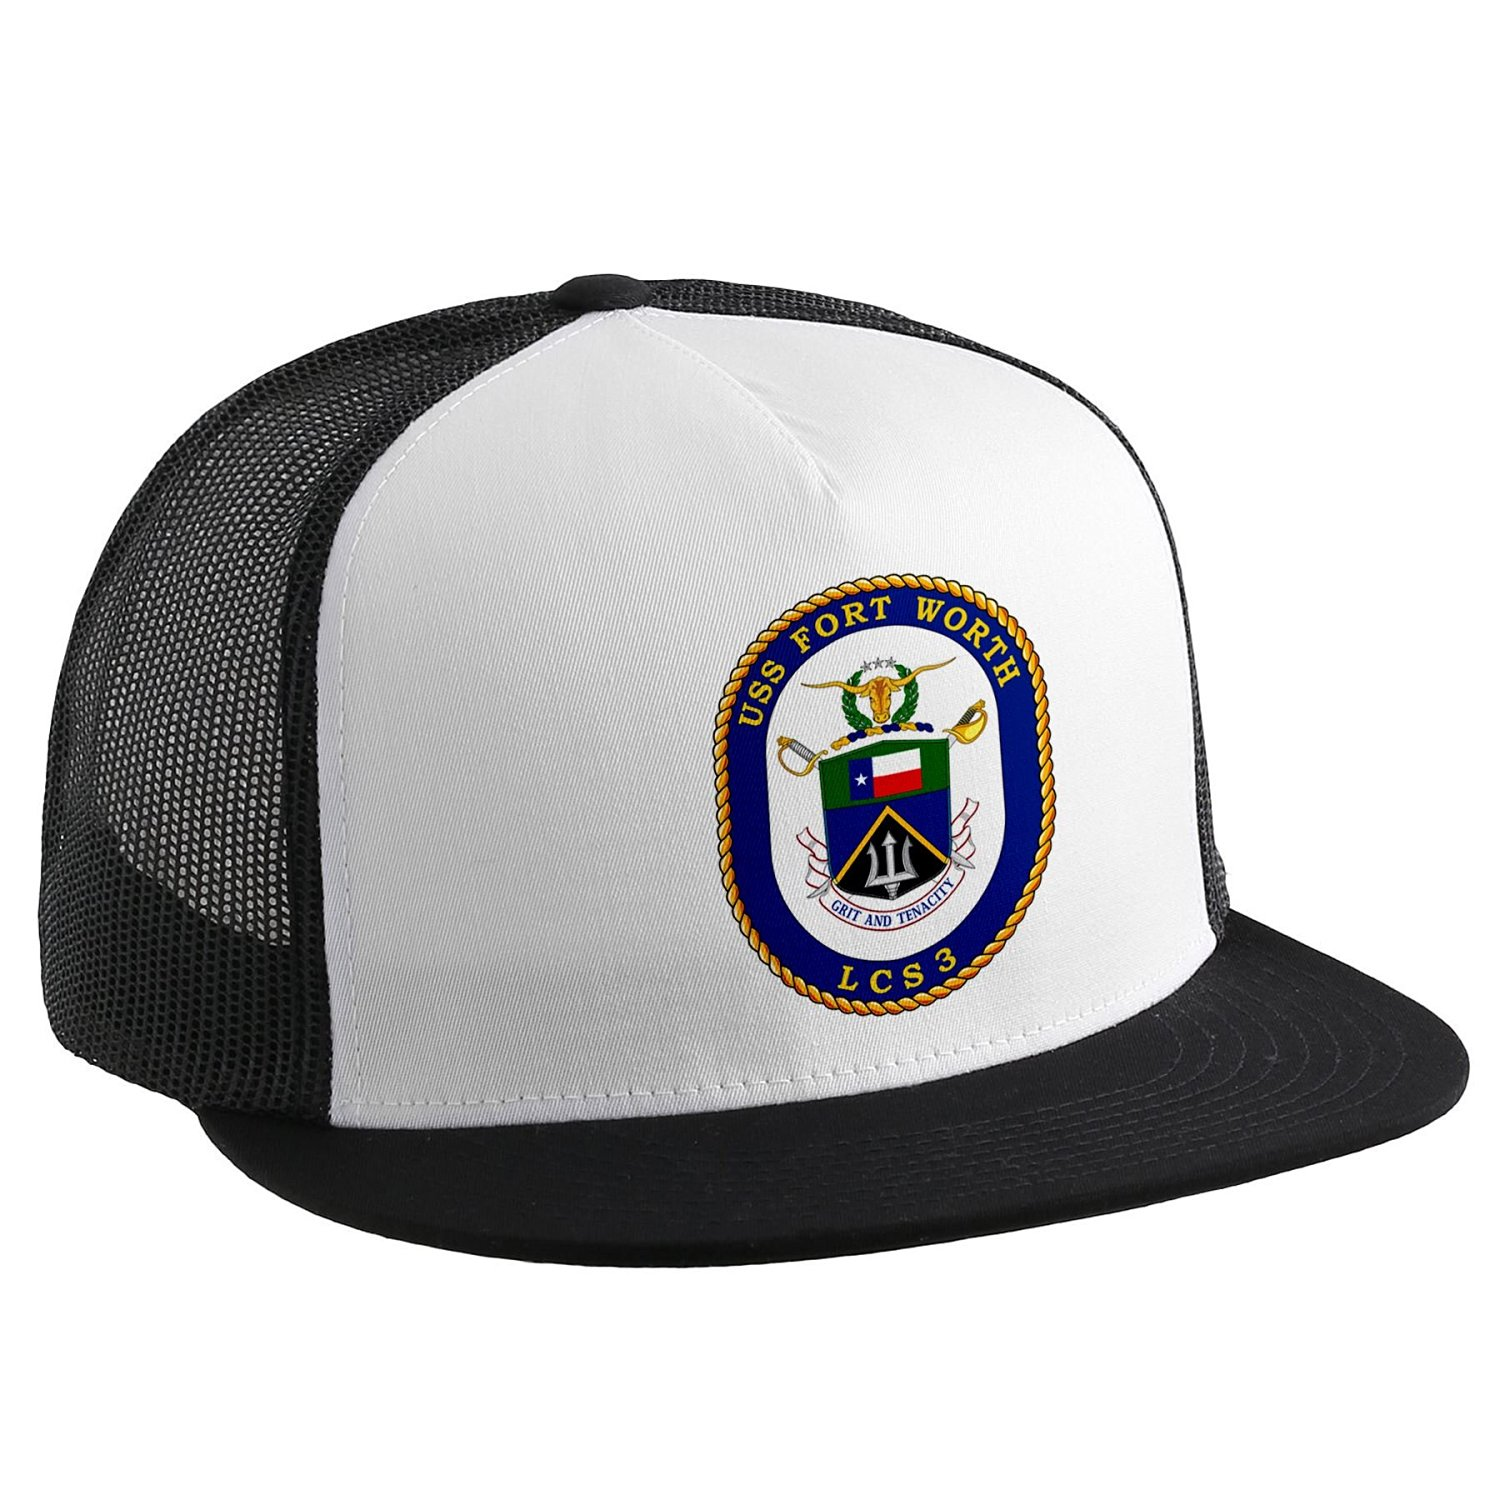 Trucker Hat with U.S. Navy USS Fort Worth (LCS 3), littoral combat ship